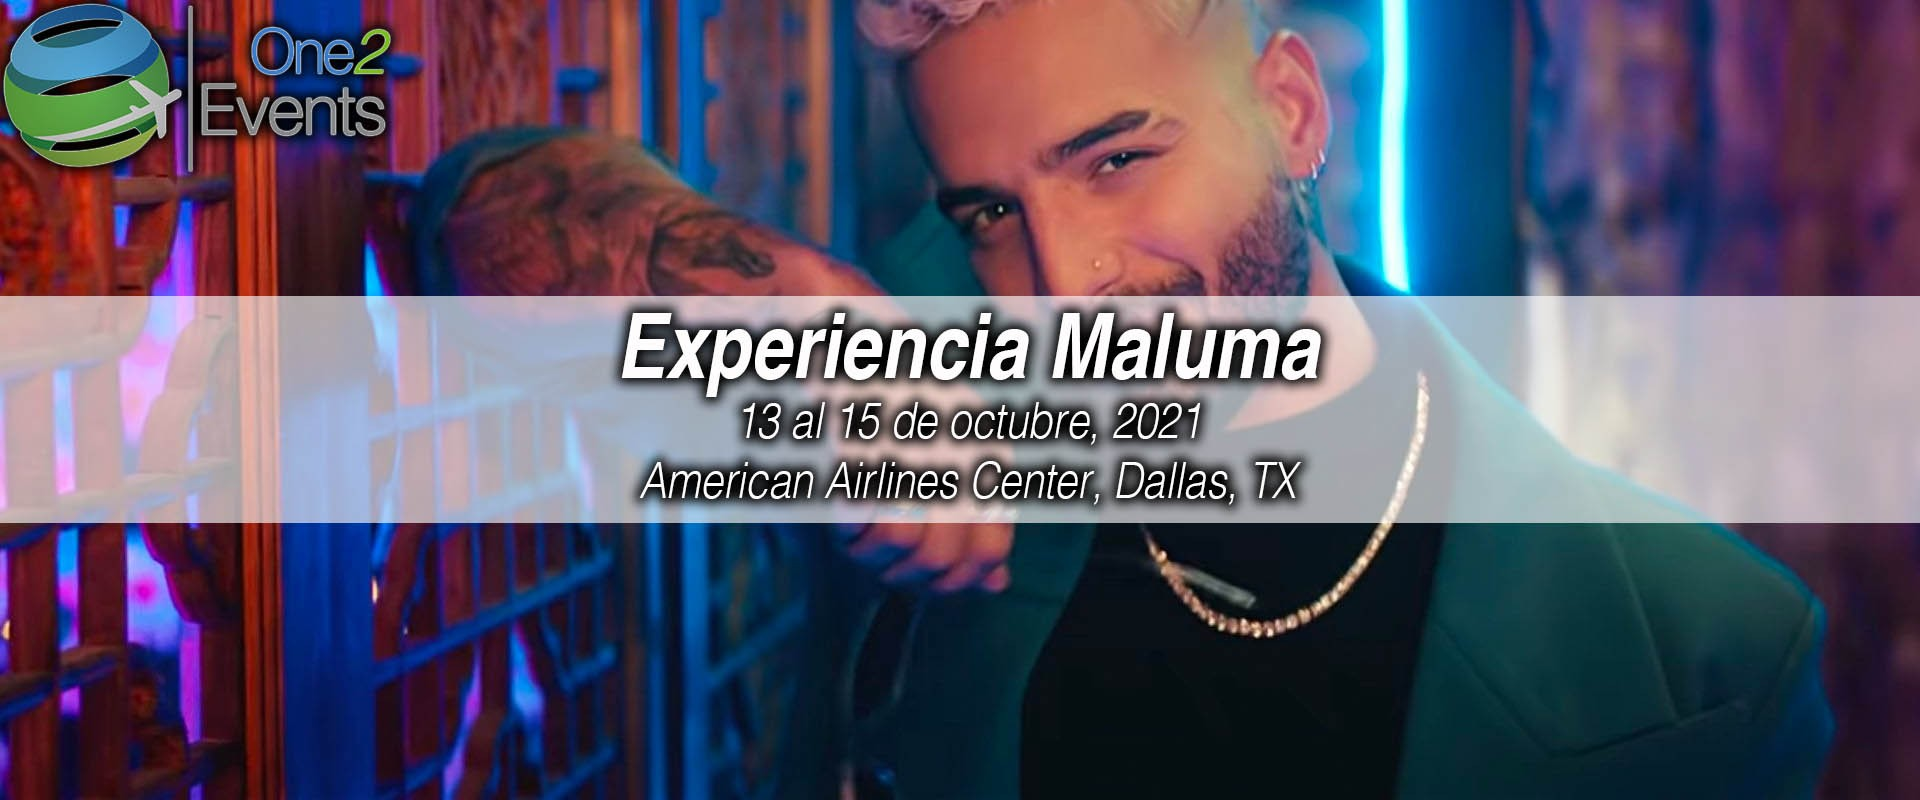 Concierto Maluma en American Airlines Center, Dallas